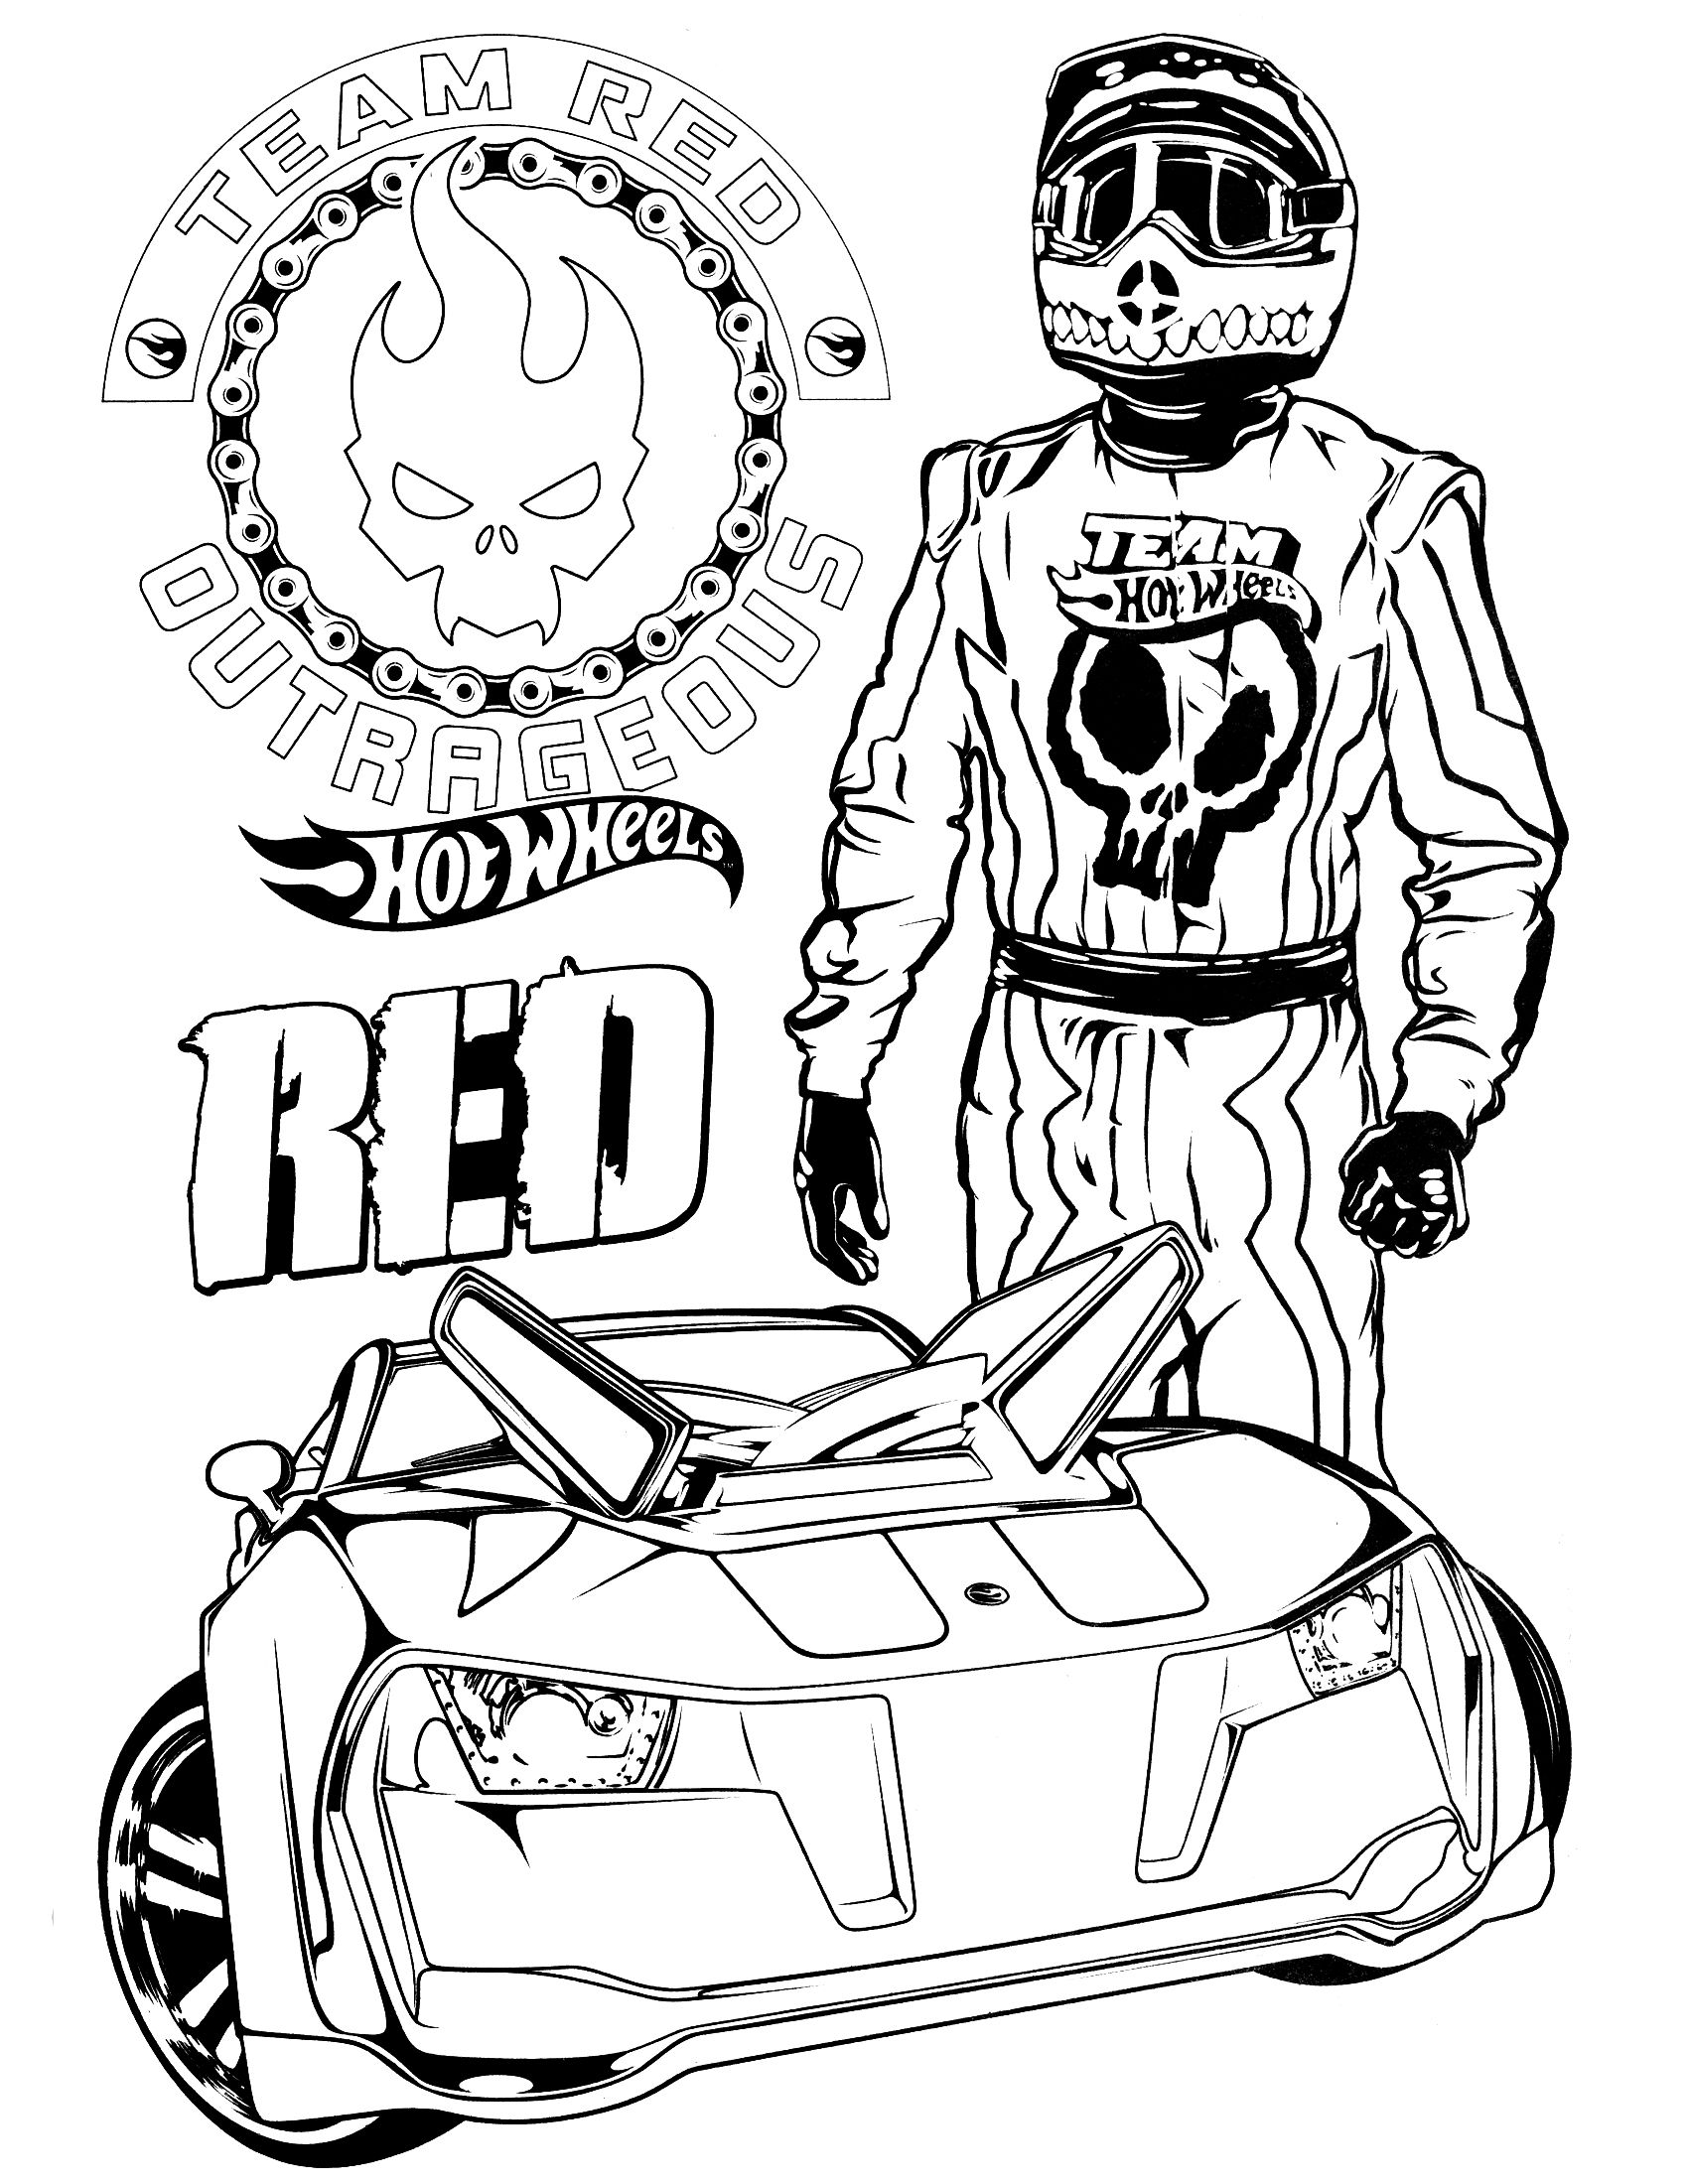 Online coloring hot wheels - Team Hot Wheels Coloring Pages 5